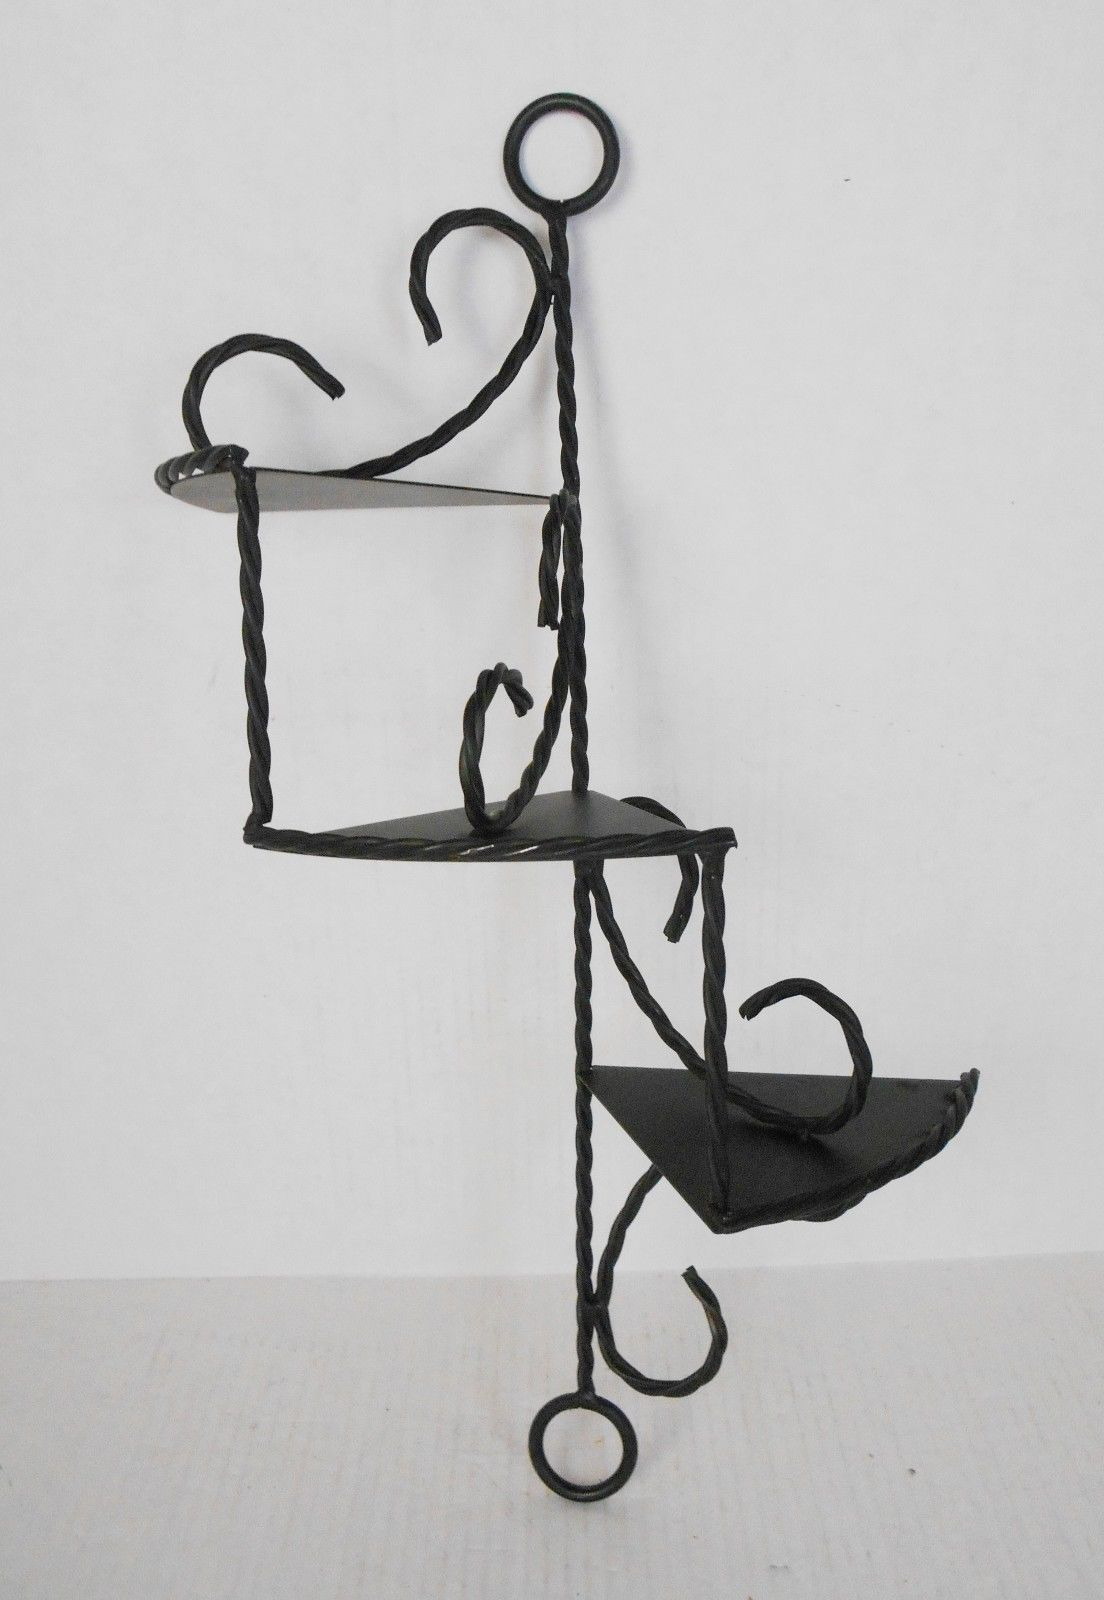 Vintage twisted wrought iron spiral staircase black wall shelf vintage twisted wrought iron spiral staircase black wall shelf ebay amipublicfo Choice Image